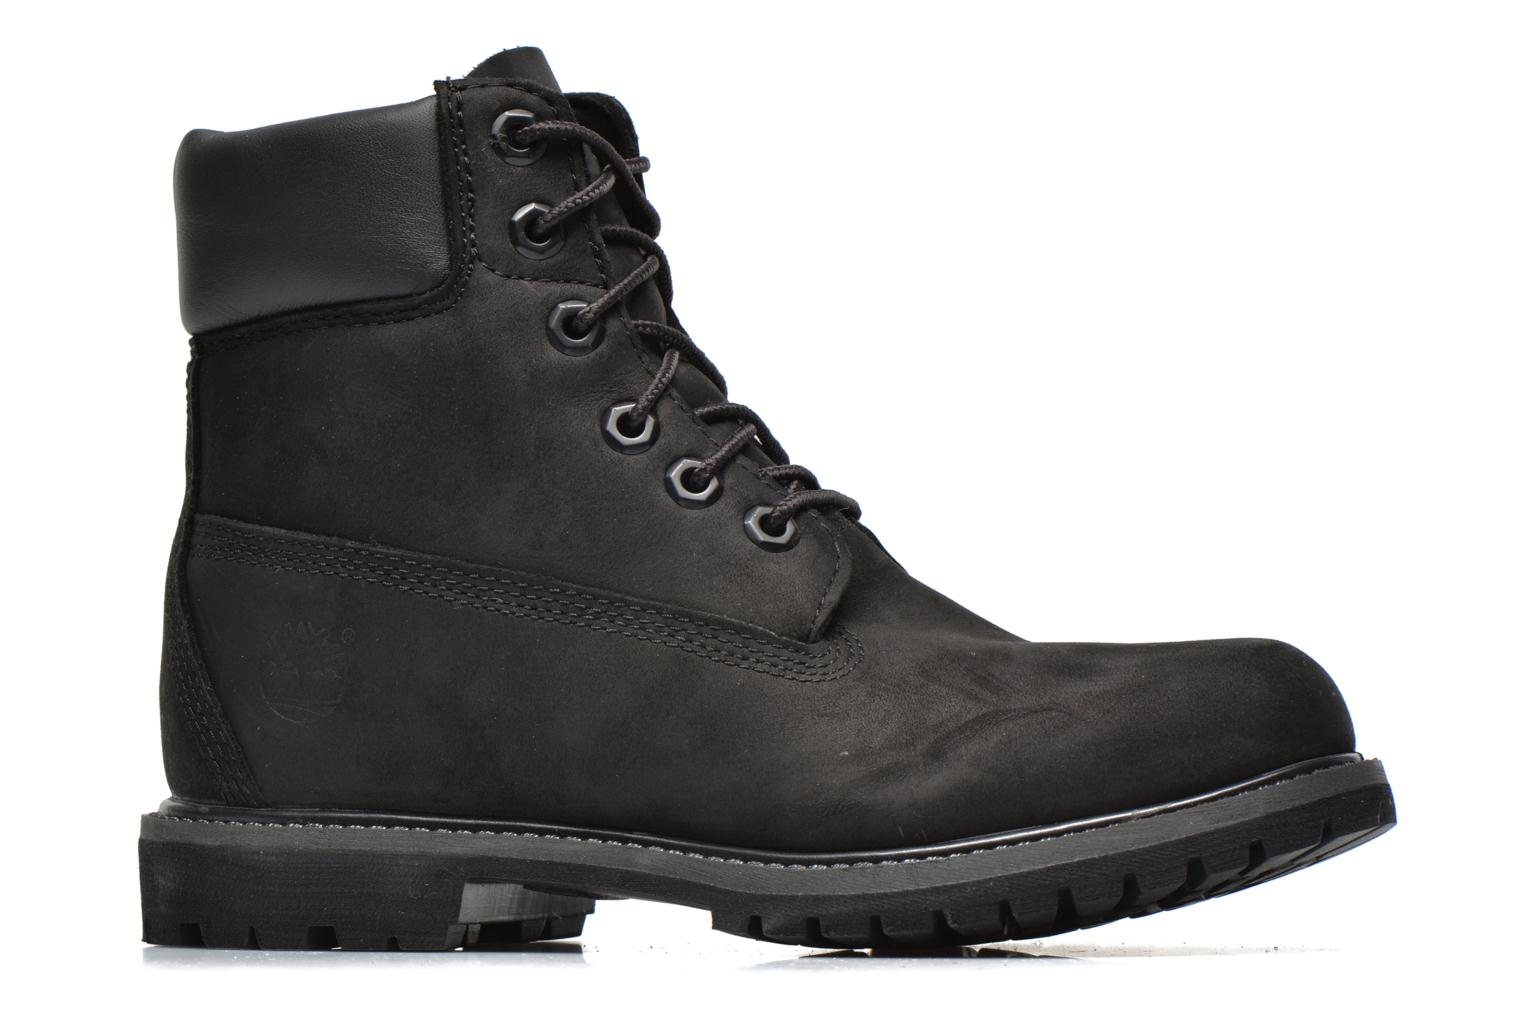 6 in premium boot w Black Nubuck